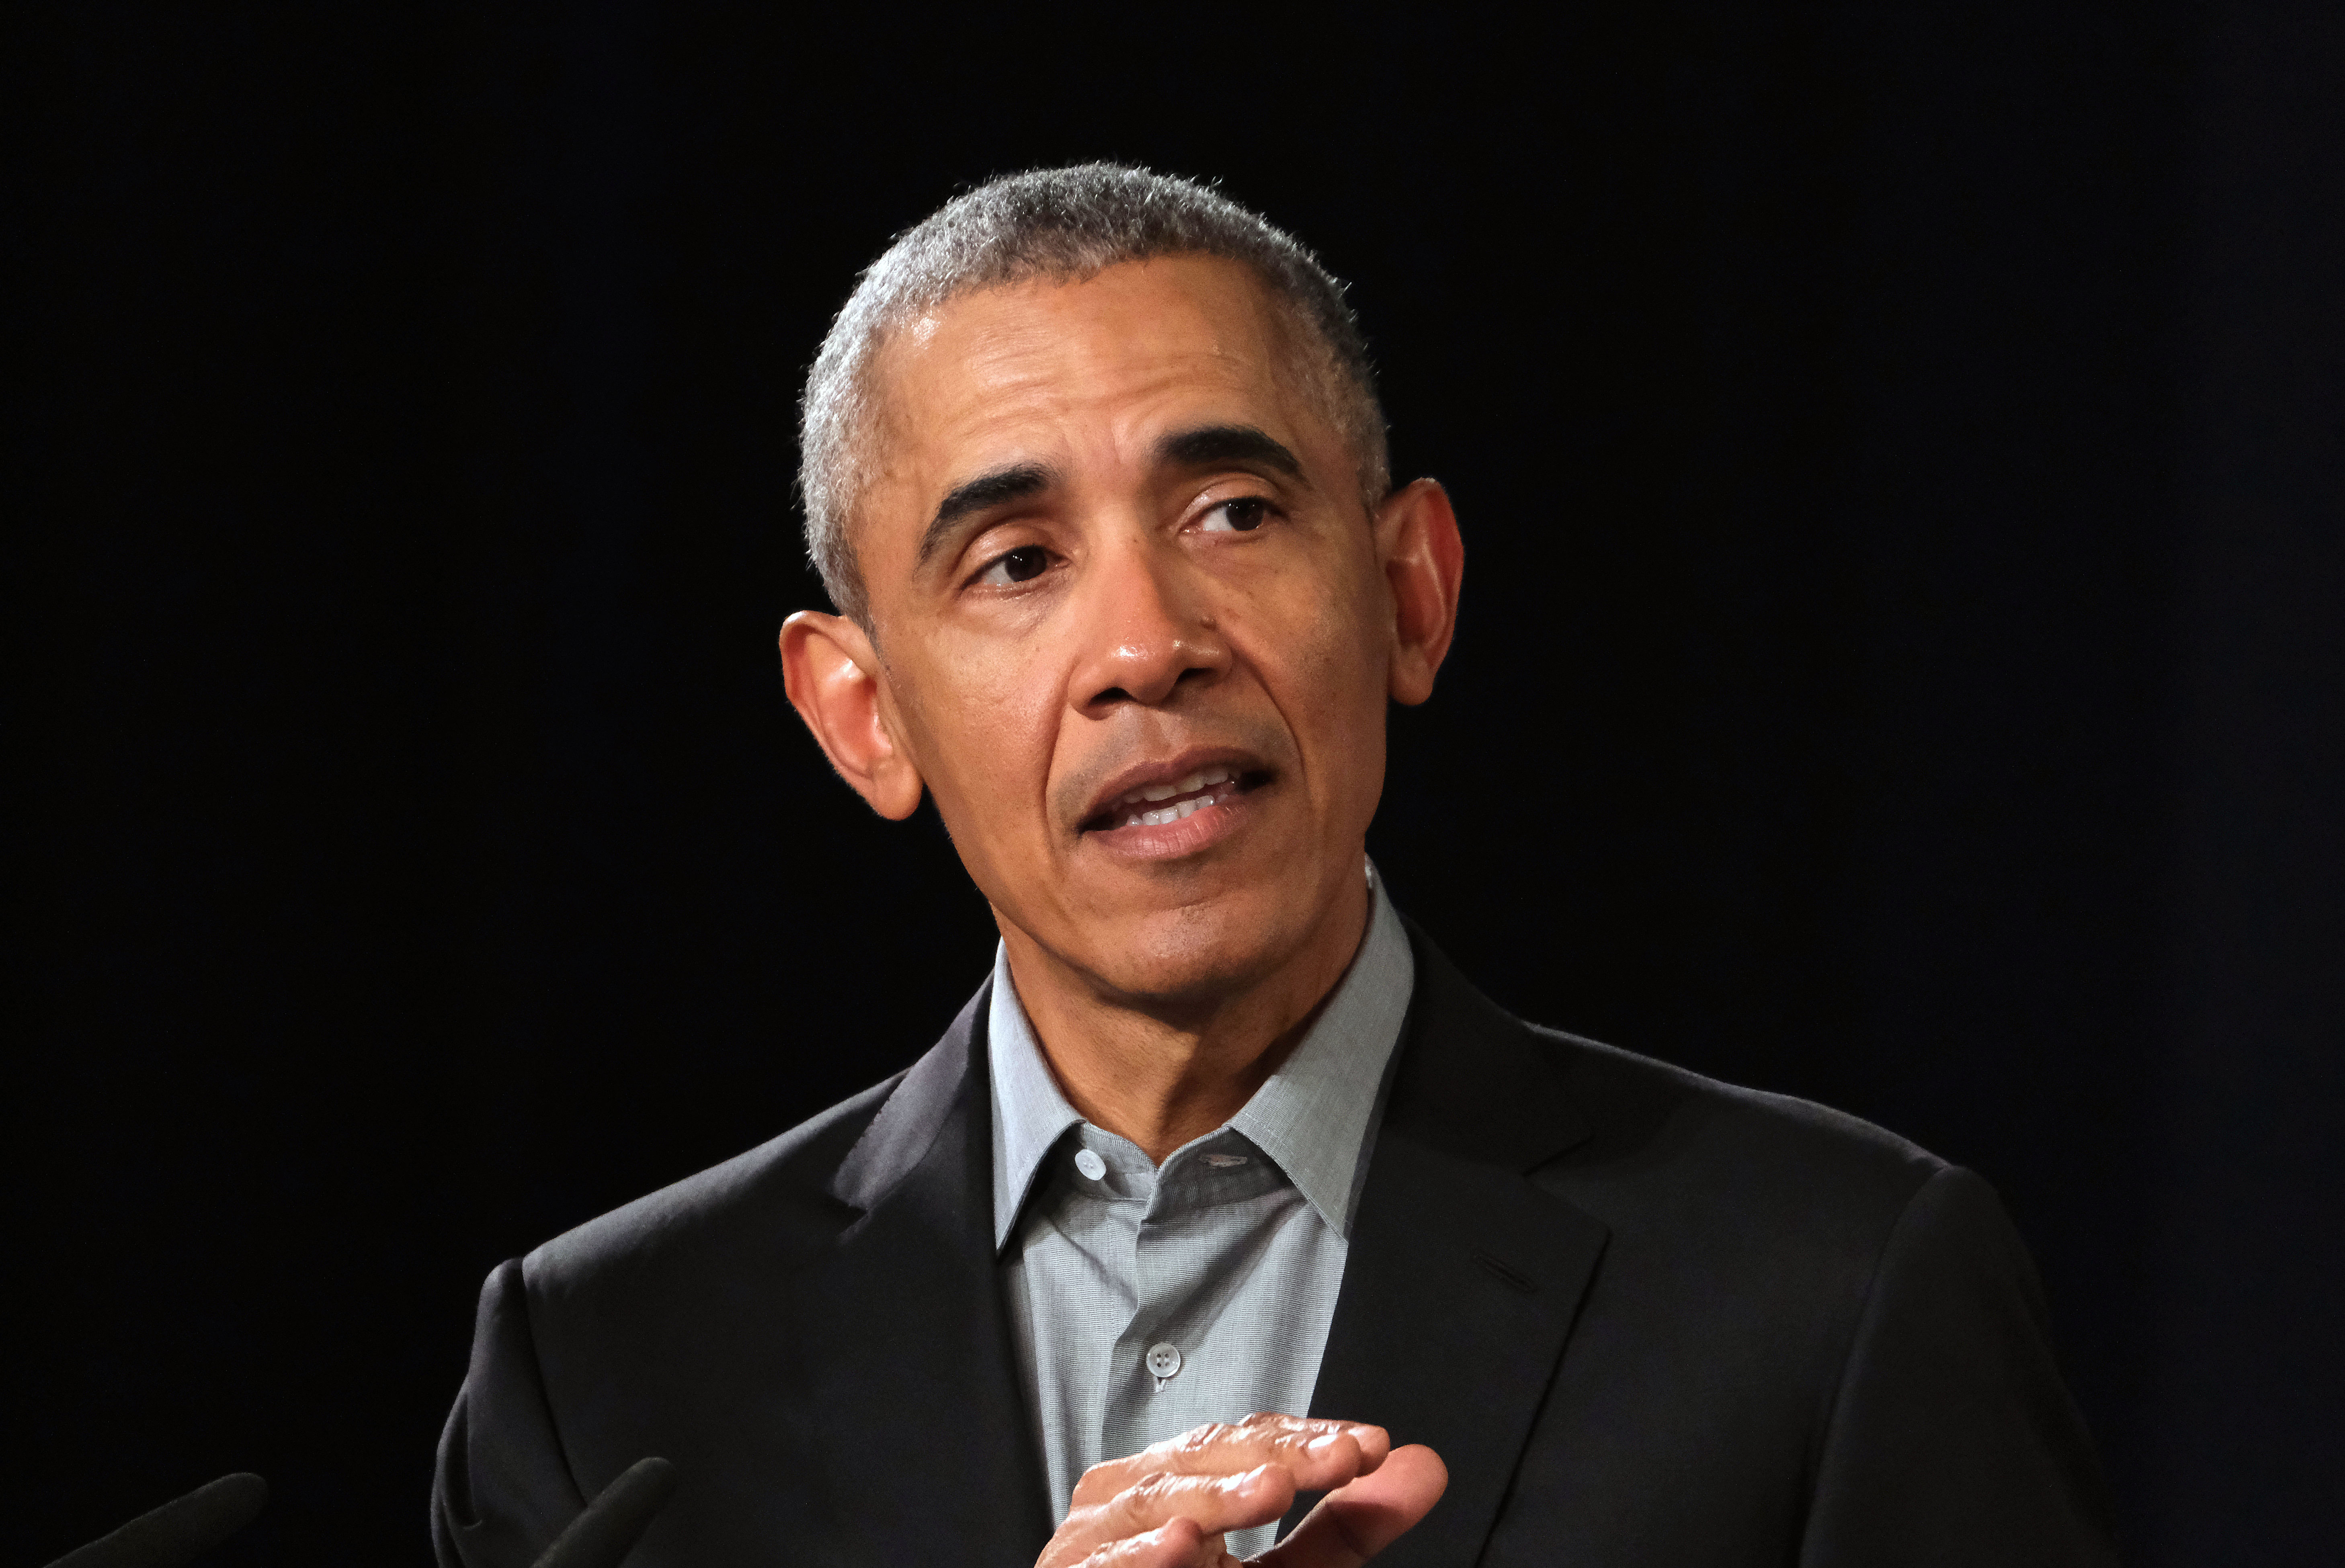 """Barack Obama React Sri Lanka Bombings - The former President of the United States shared his heartfelt reaction in a tweet on Sunday morning. """"The attacks on tourists and Easter worshippers in Sri Lanka are an attack on humanity,"""" he wrote."""